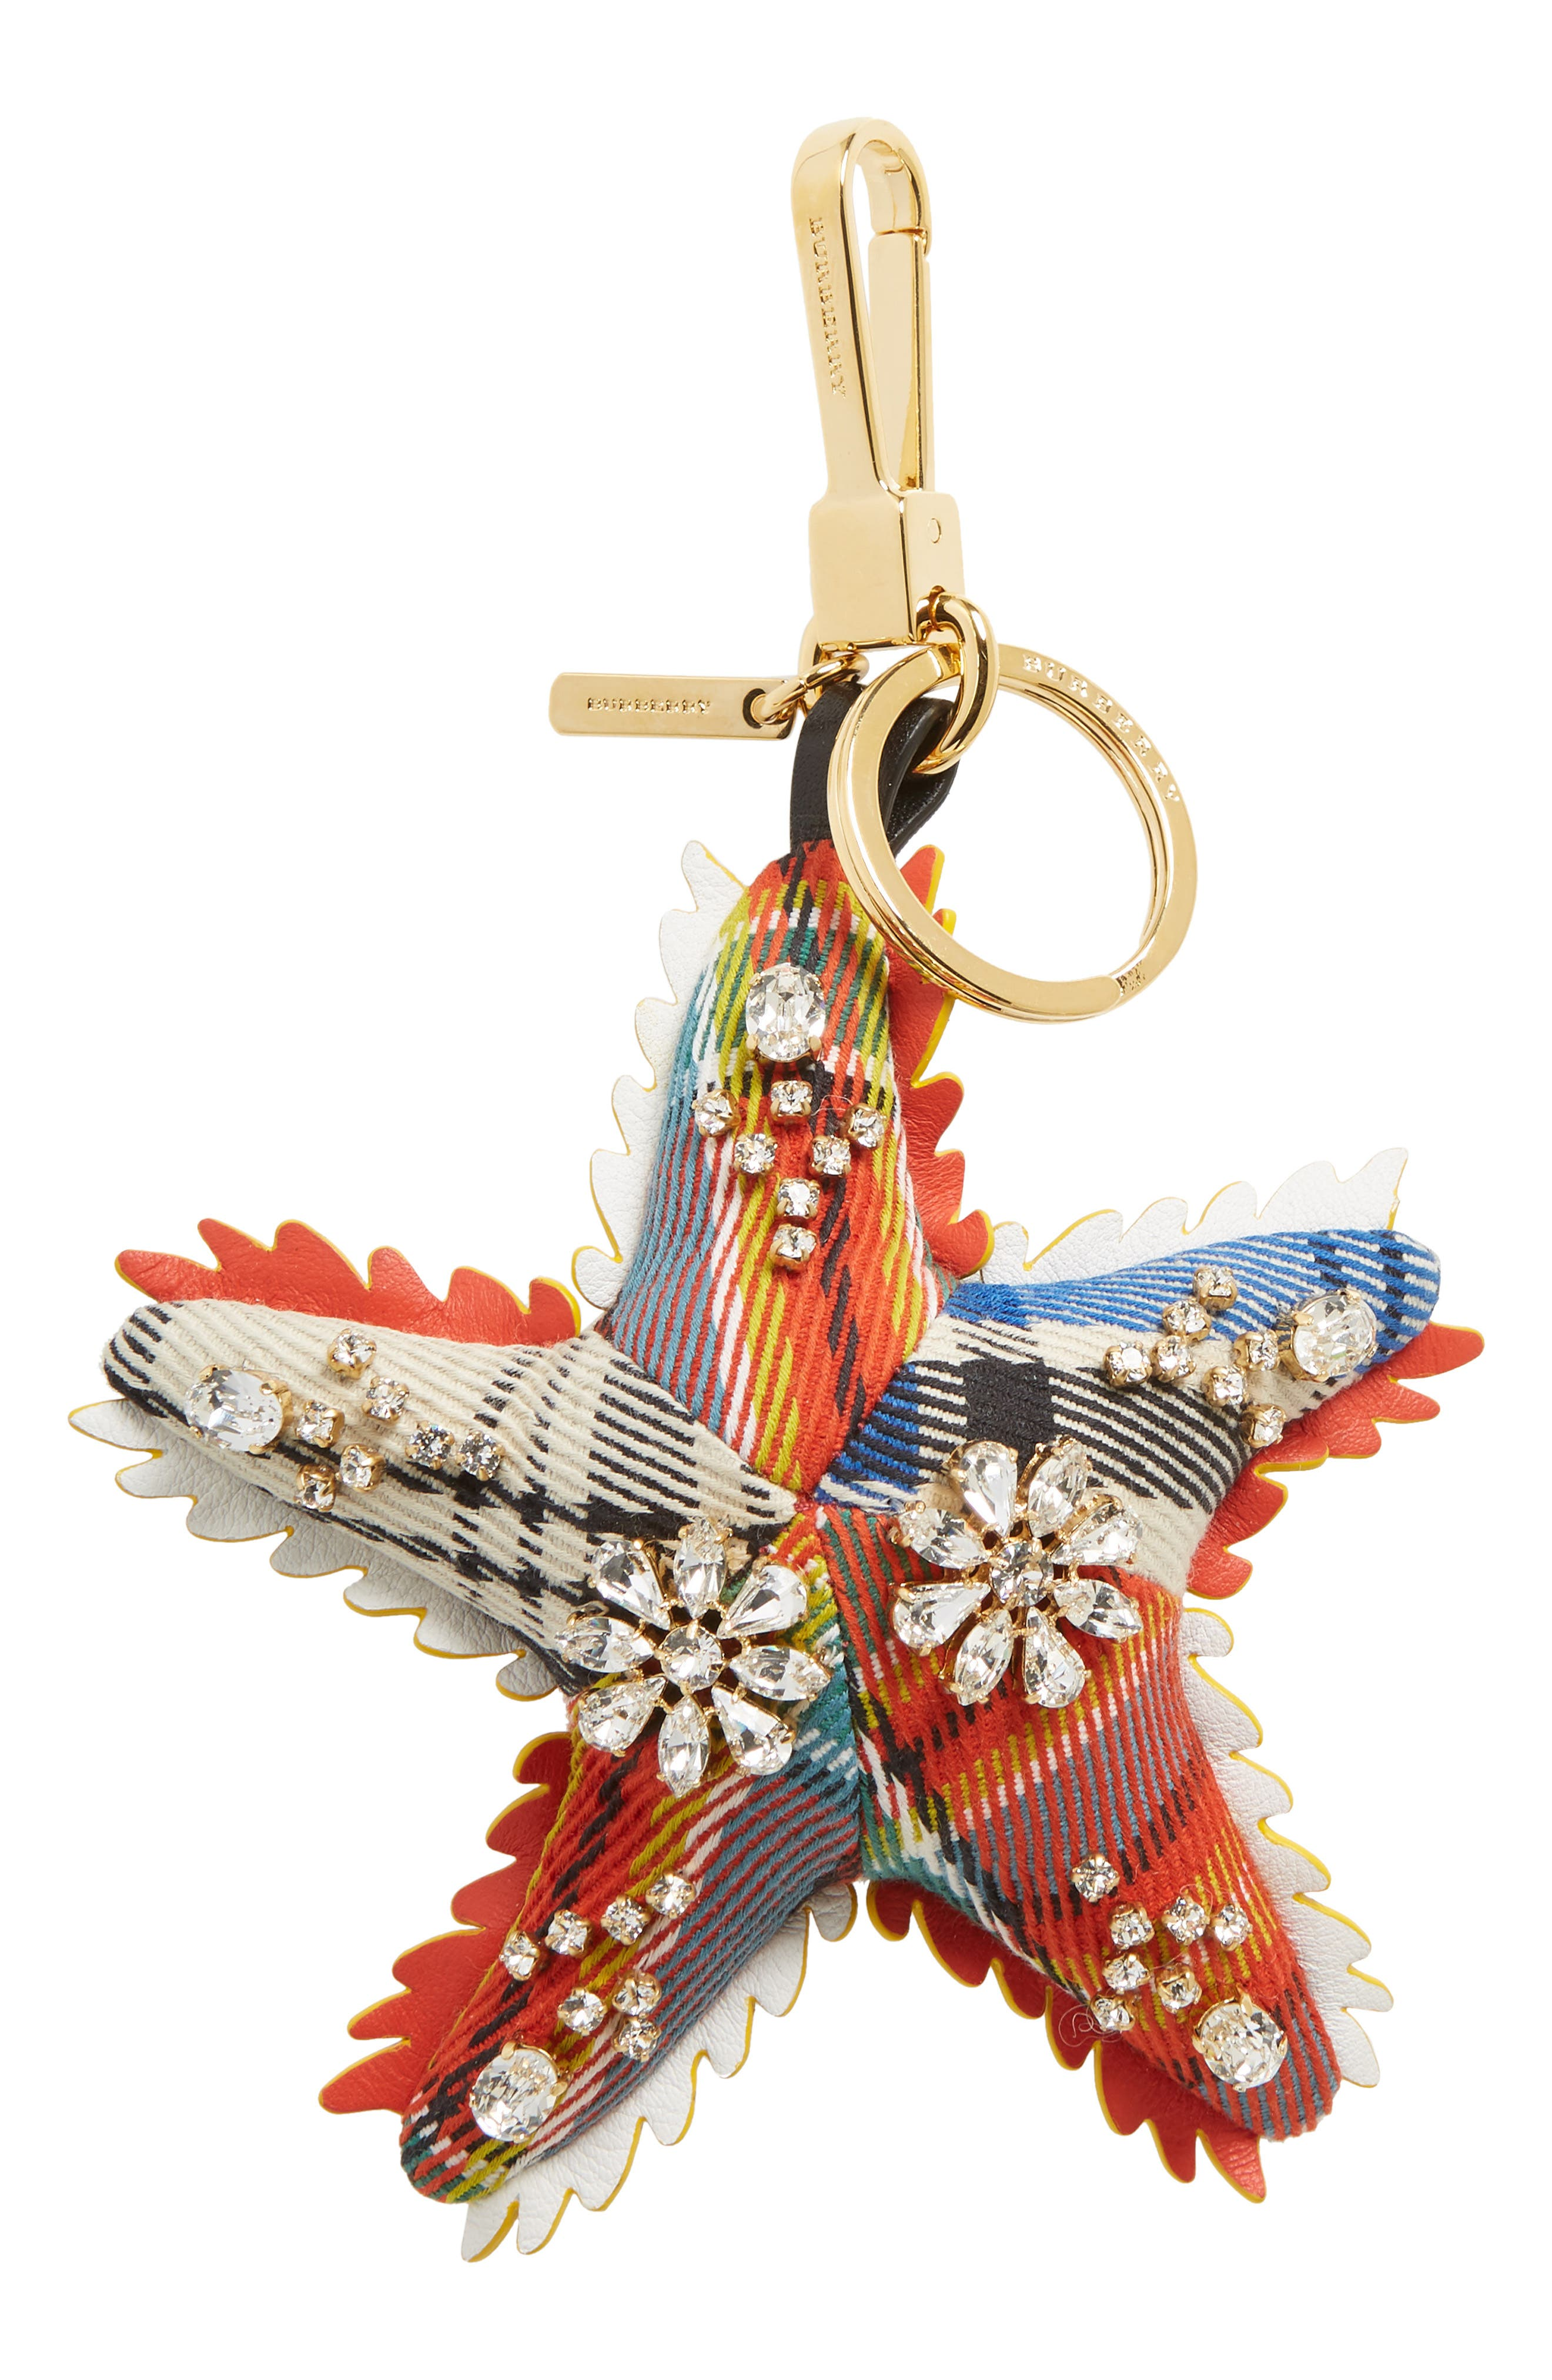 Burberry Phil the Starfish Cashmere Bag Charm